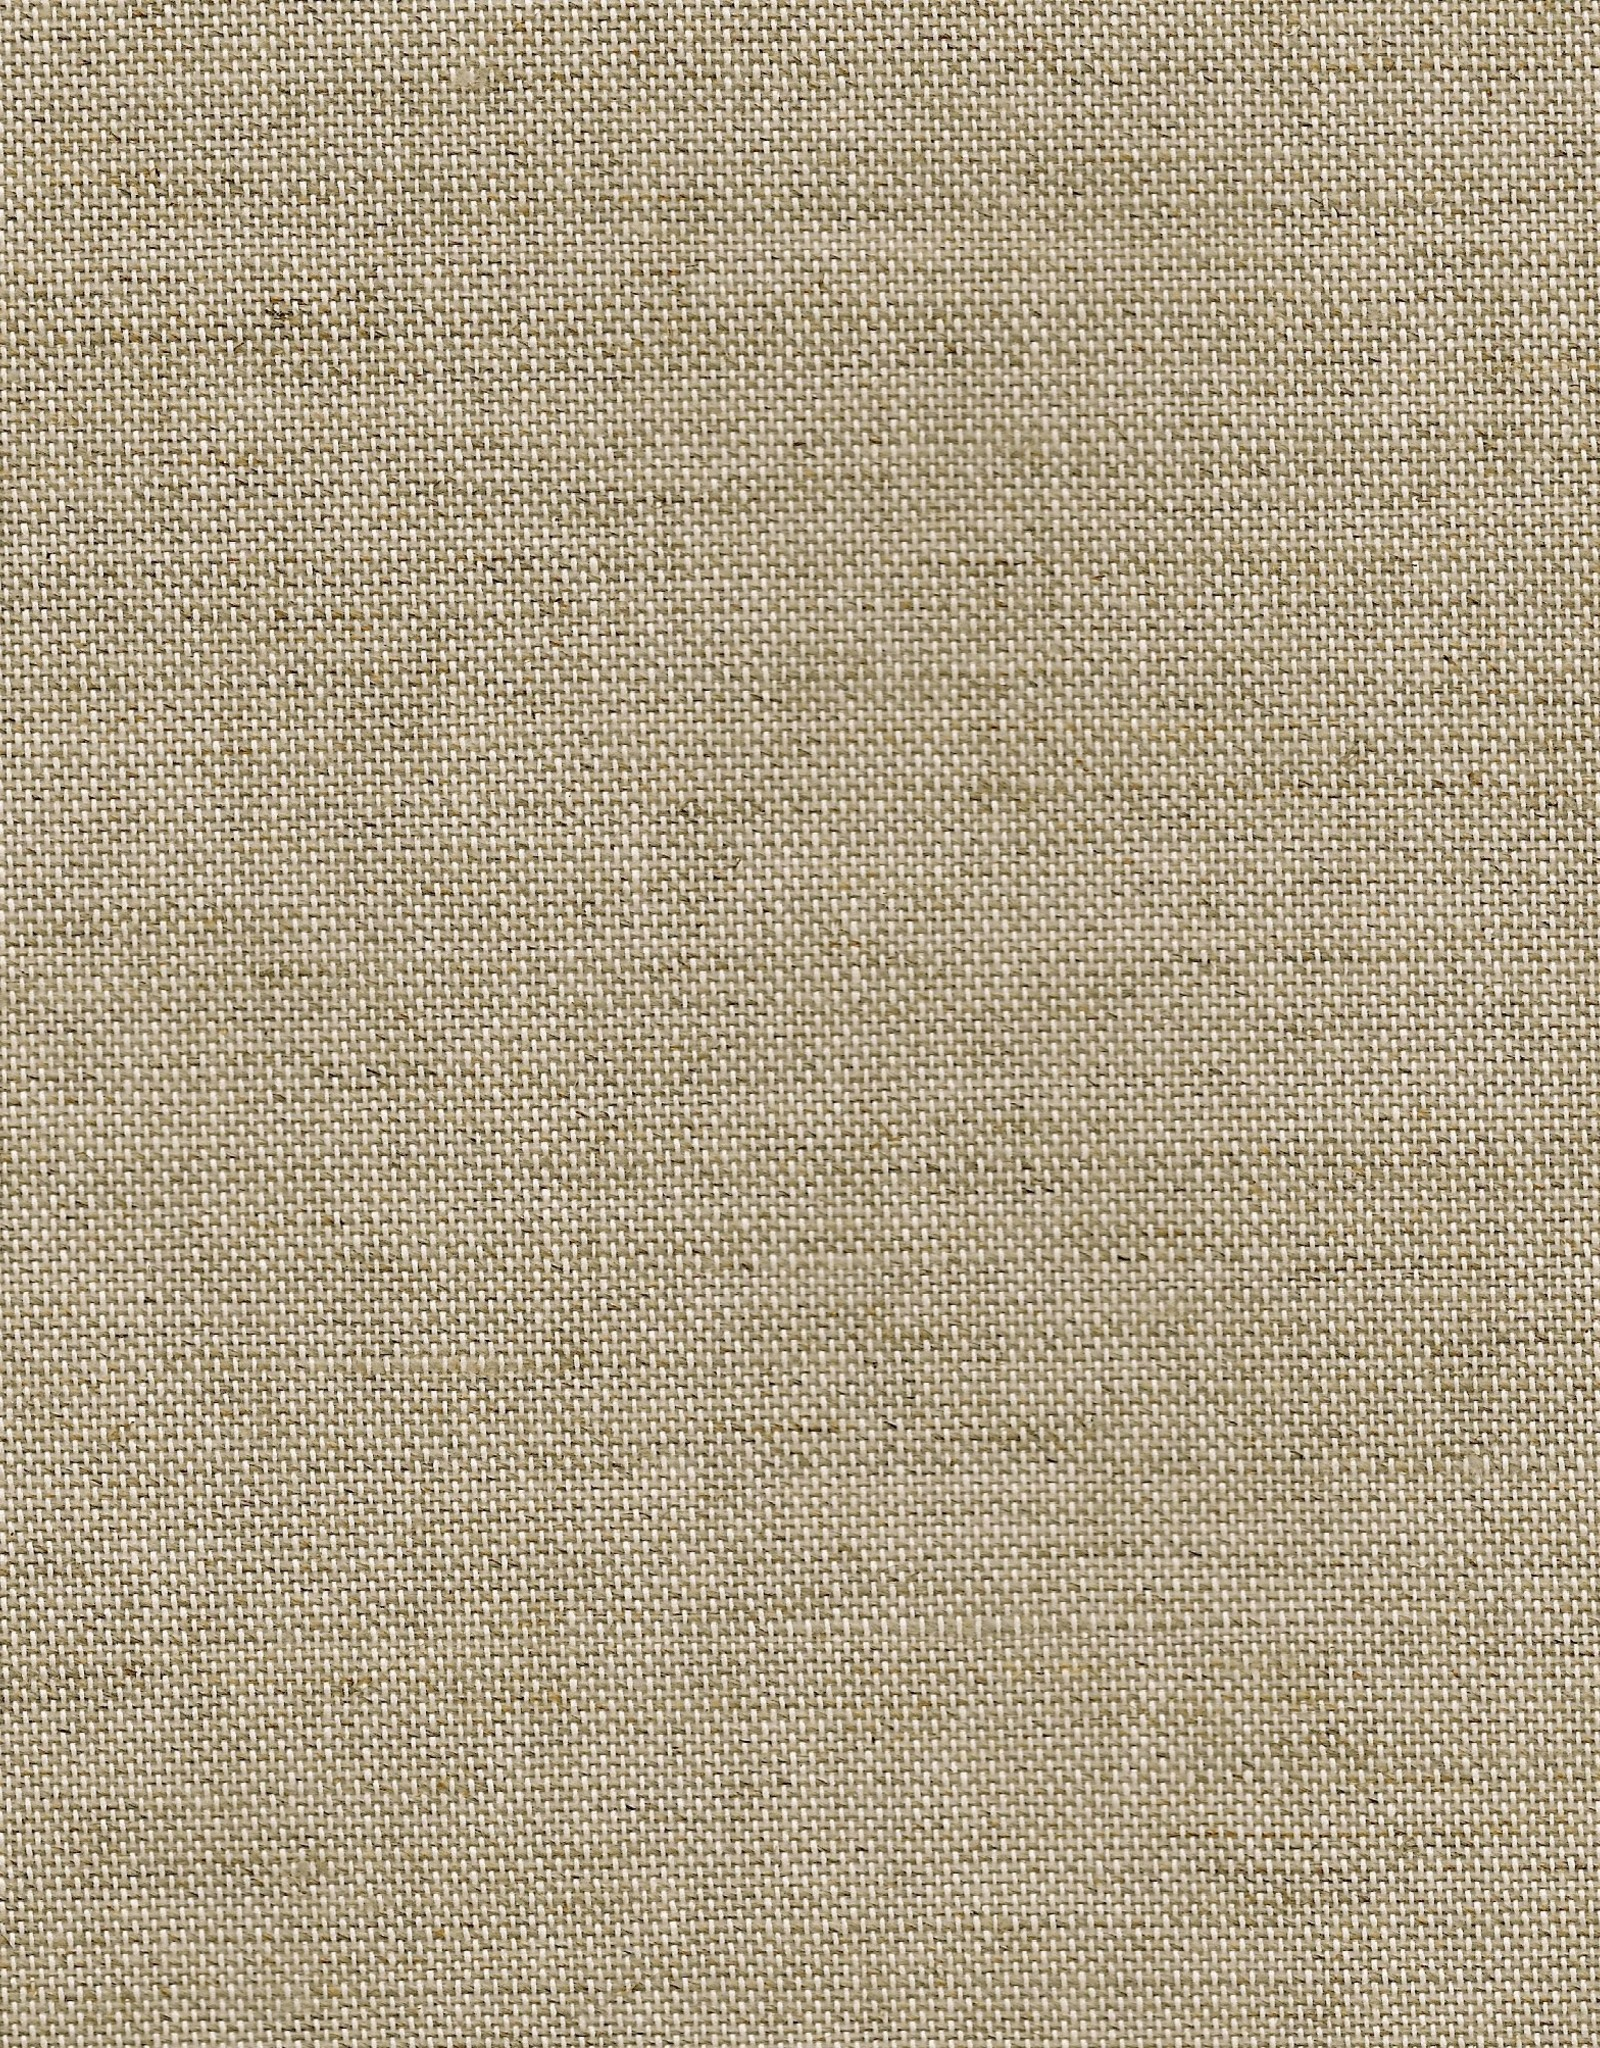 "Book Cloth Linen, 17"" x 21"", 2 sheets, Acid-Free, 100% Rayon, Paper Backed"